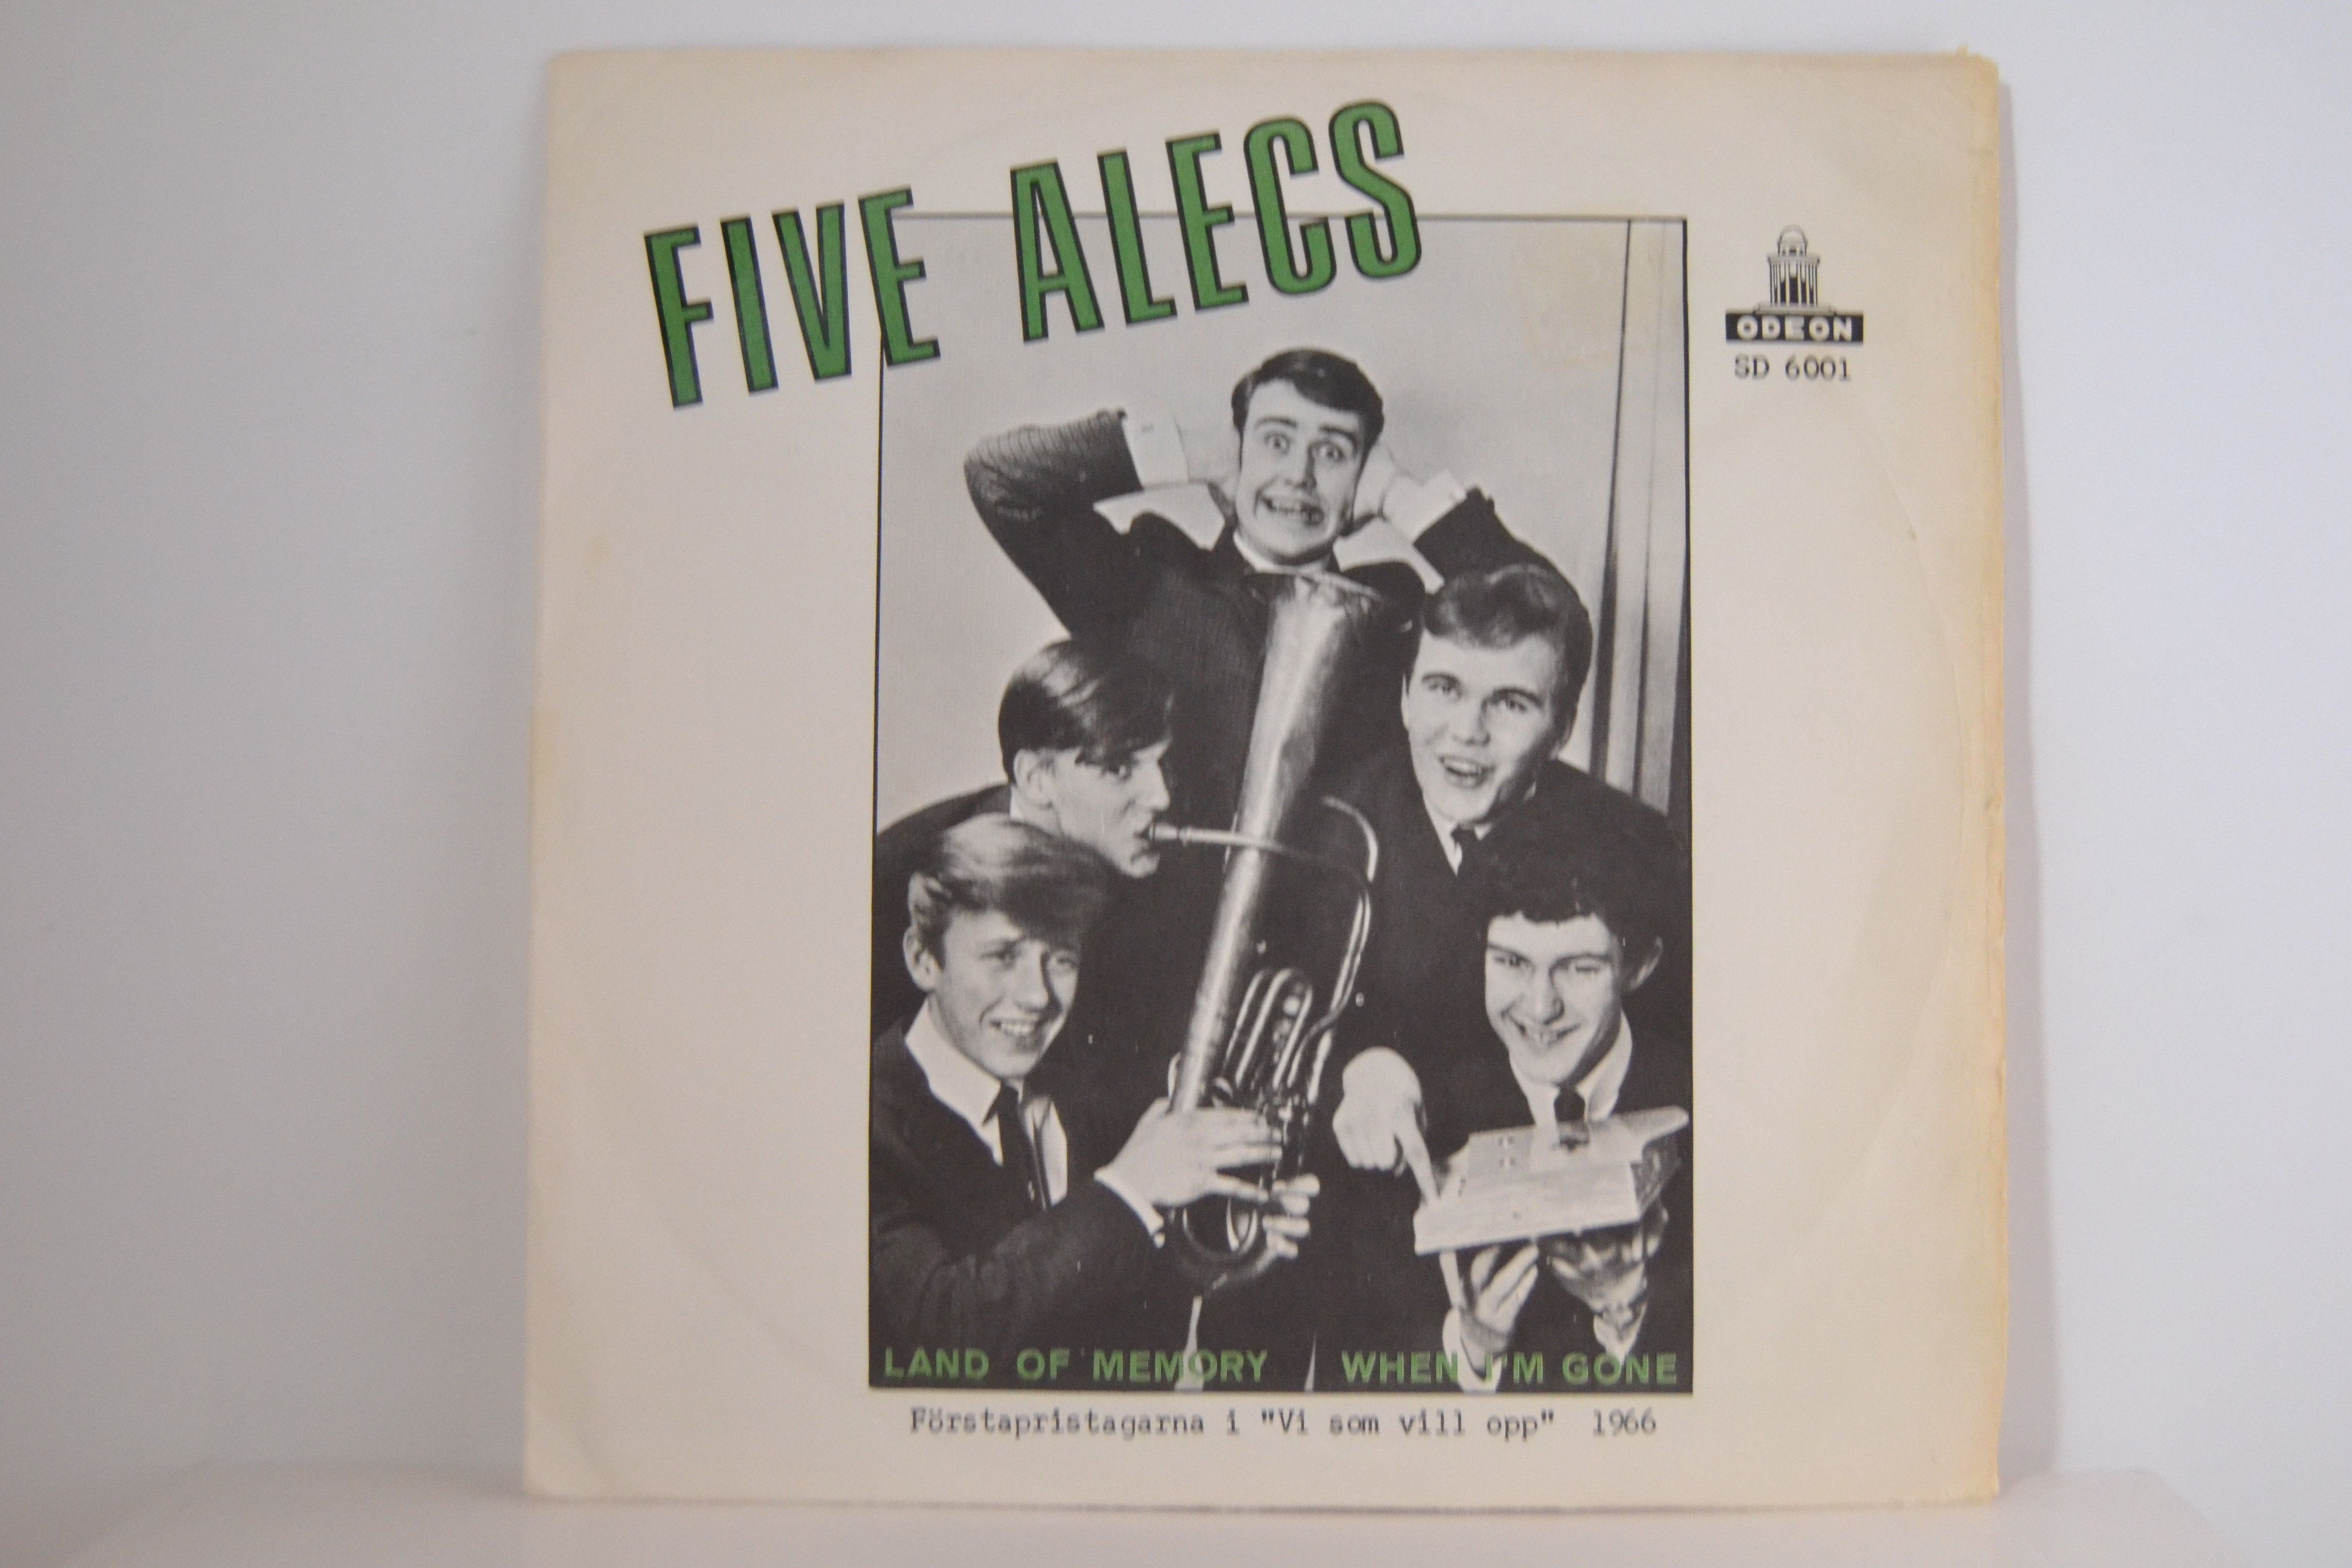 FIVE ALECS : Land of memory / When I'm gone